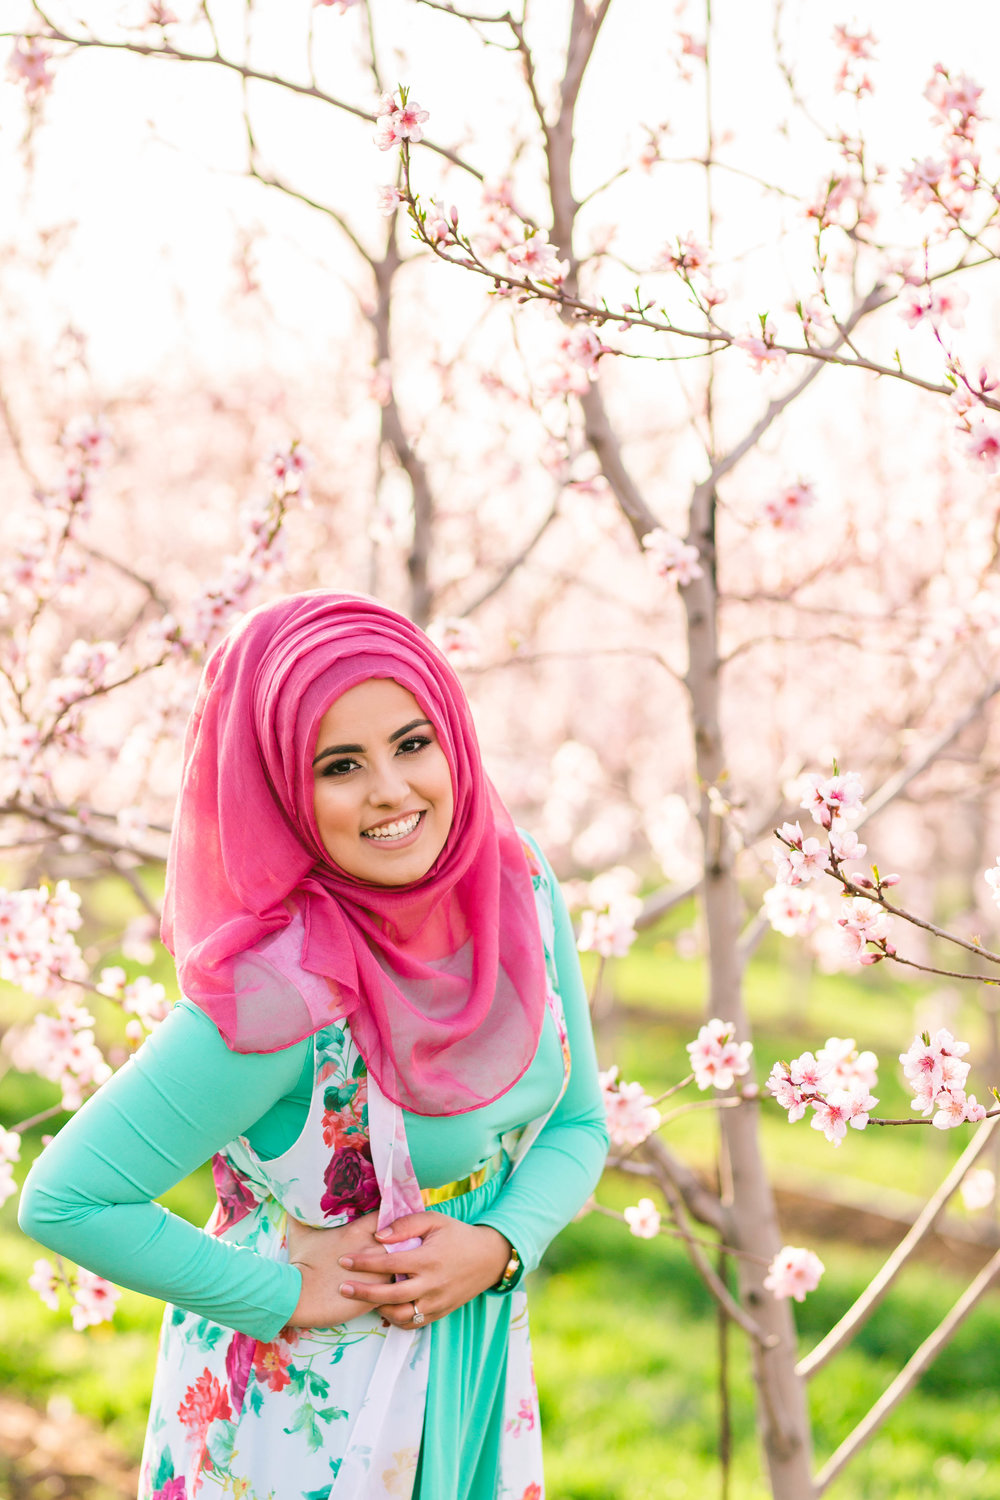 azra-cherry-blossoms-002.jpg